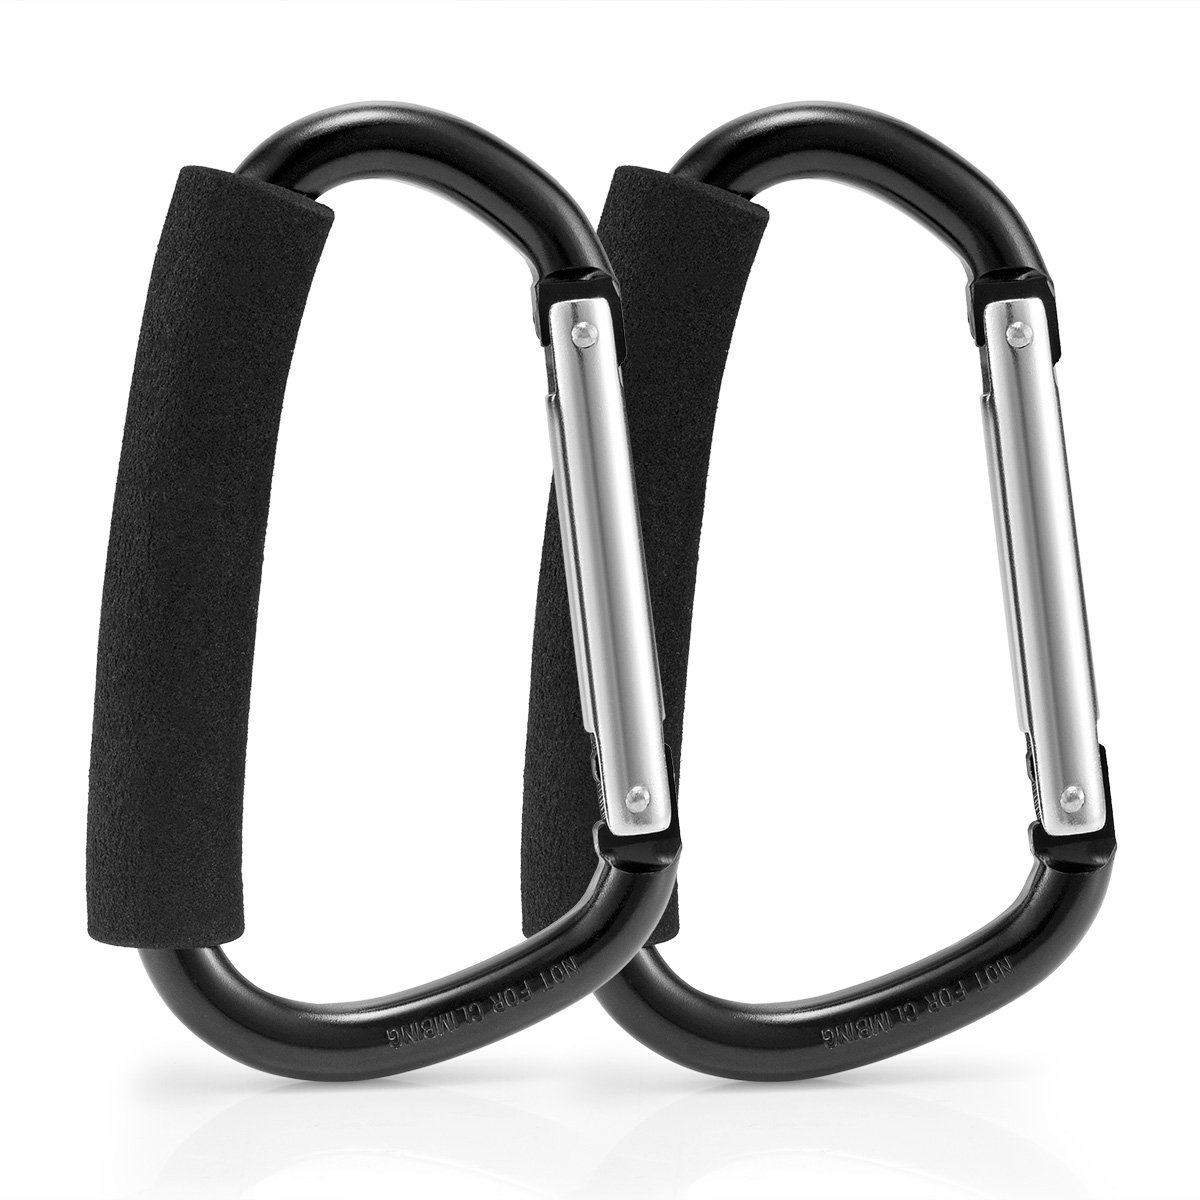 Avinee Handy Stroller Hook,Clips On Any Baby Stroller Or Infant Car Seat,Prefect for Diaper Bags, Toys, Bags, Stroller Accessories, Baby Changing Pad -Pack of 2 by Avinee (Image #2)